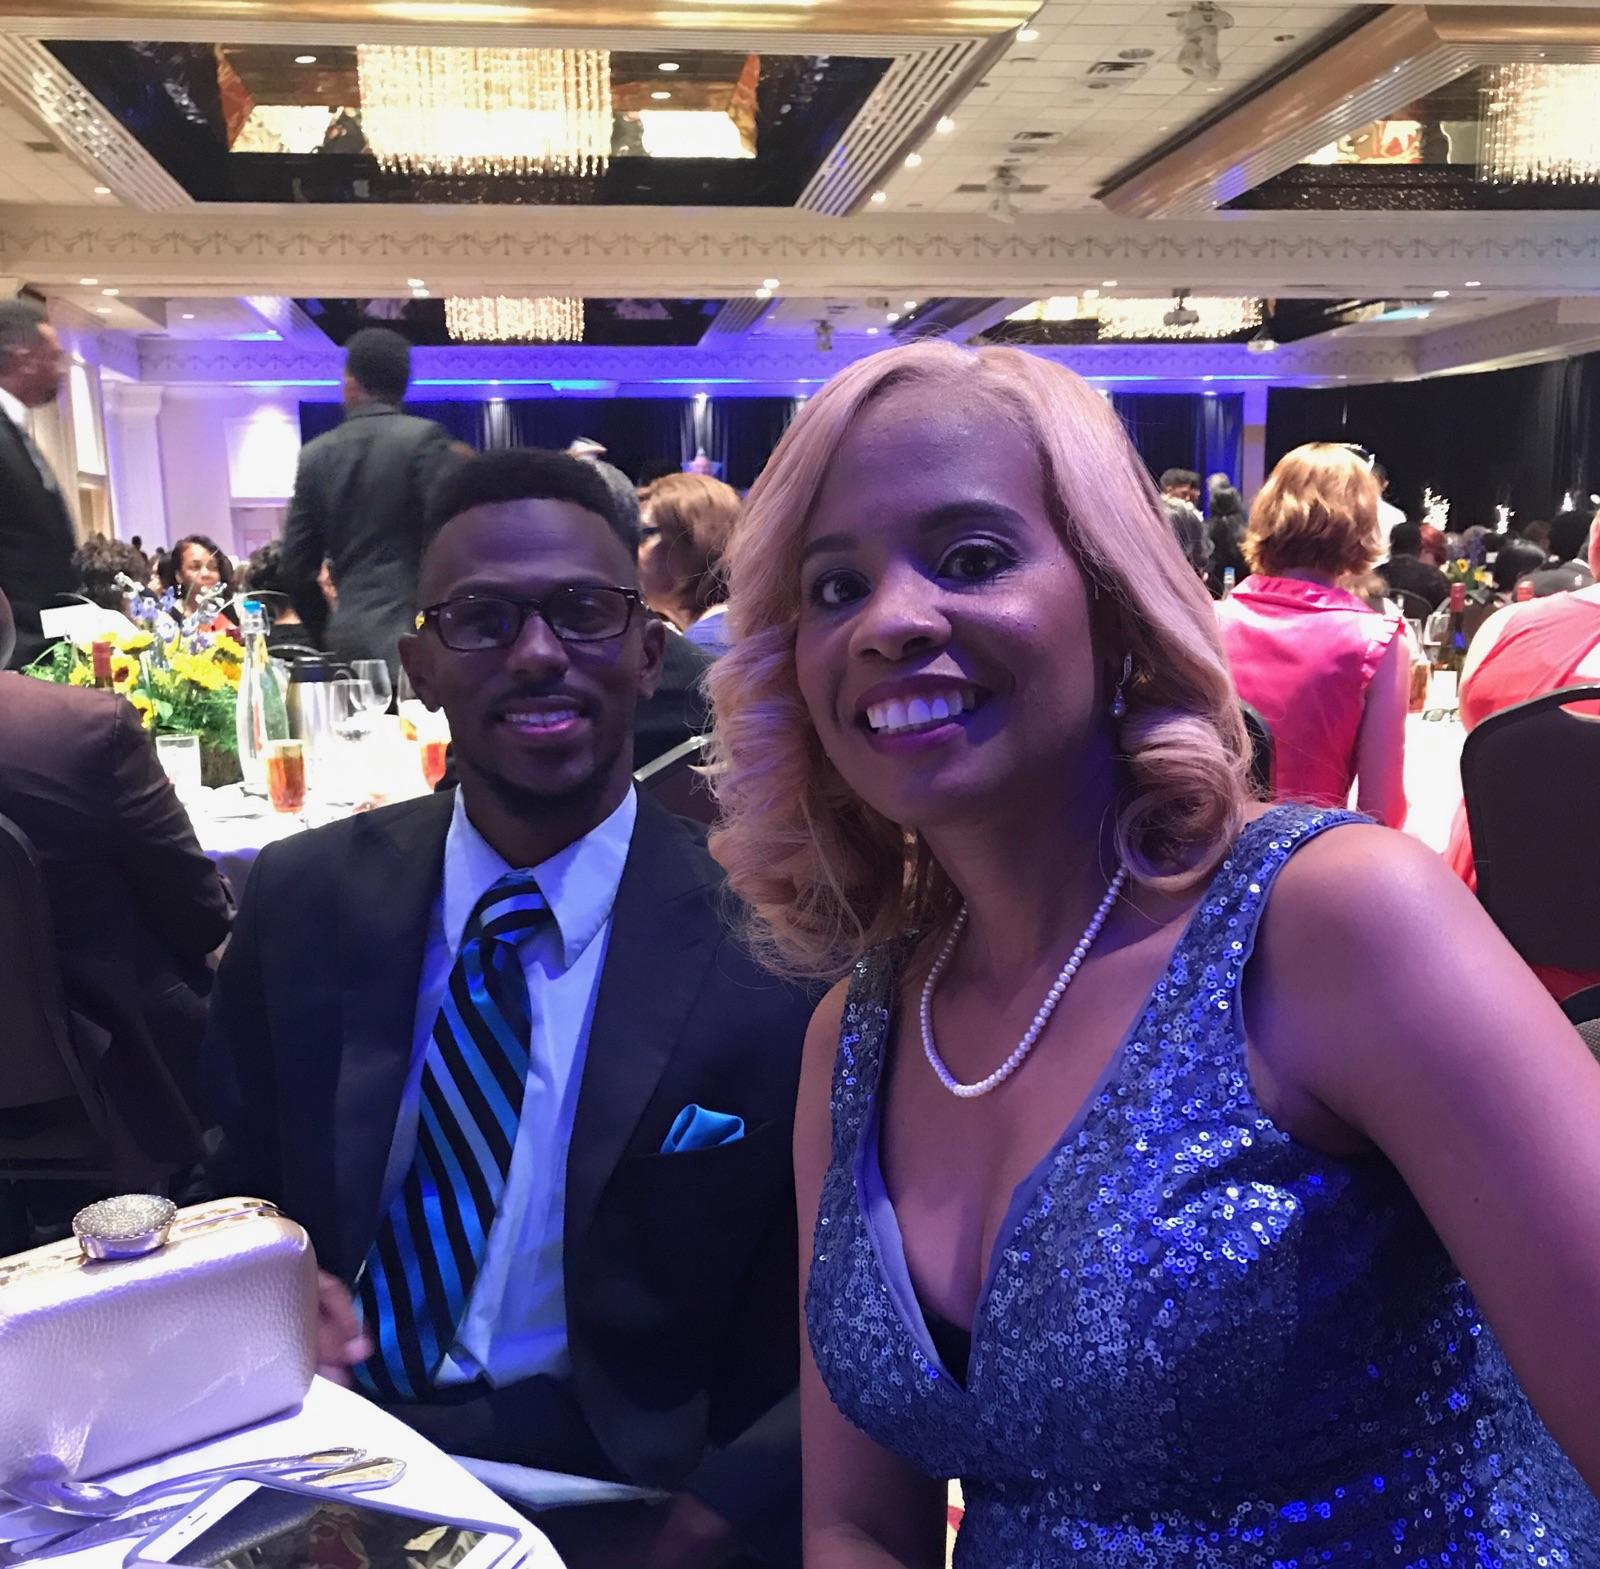 Principal Penn with her husband at the gala honoring educators from across the state